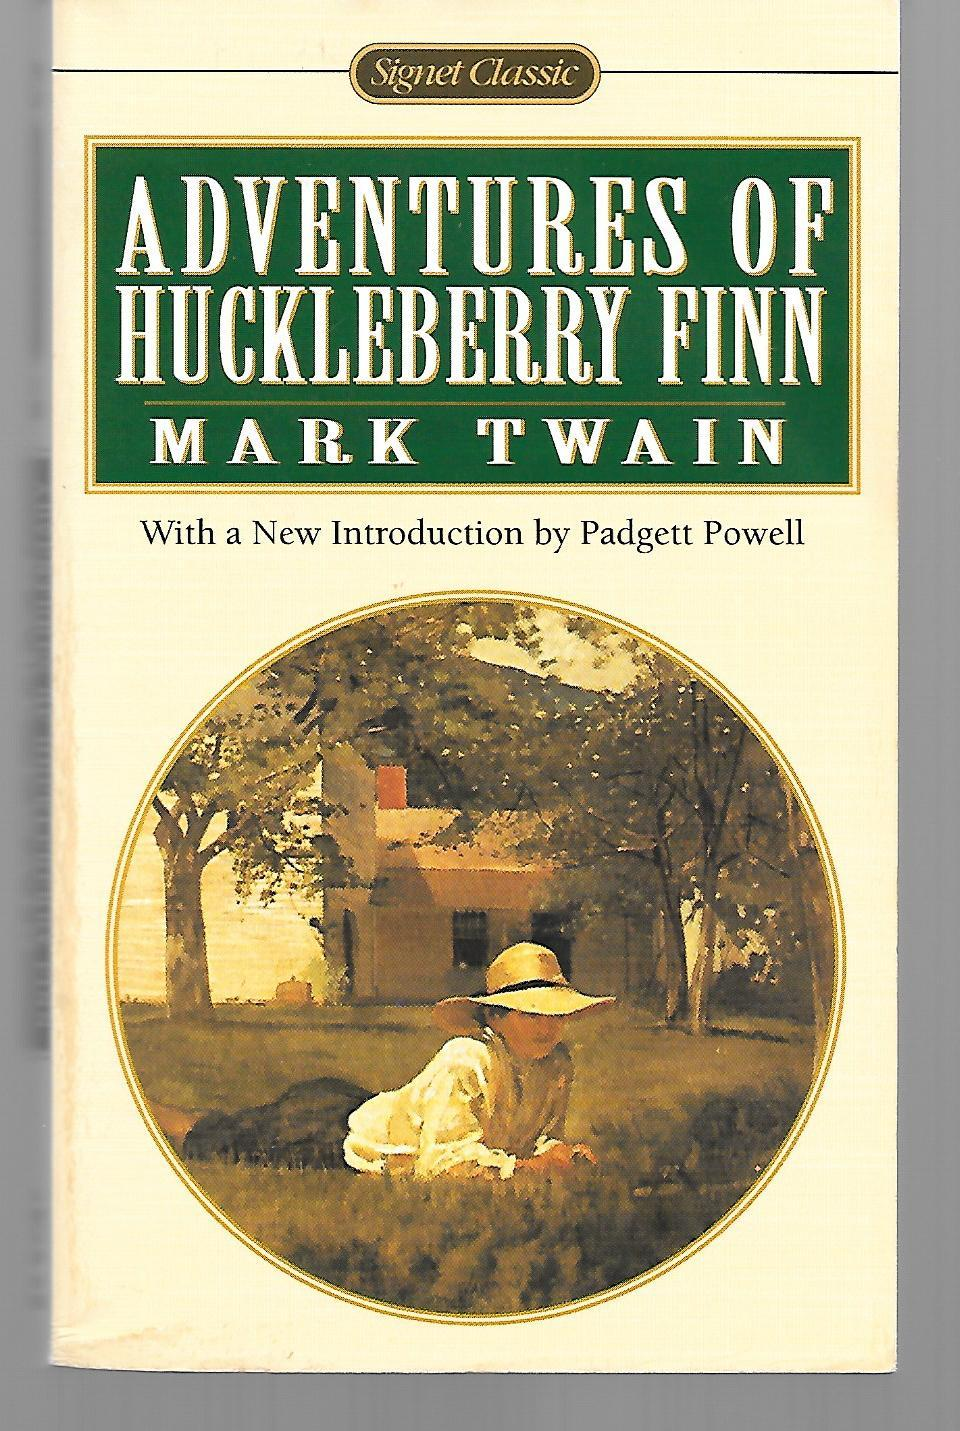 huckleberry finns struggle with conscience essay Huckleberry finn's struggles with conscience since mark twain published the adventures of huckleberry finn in 1885, critics have considered it an excellent example of.